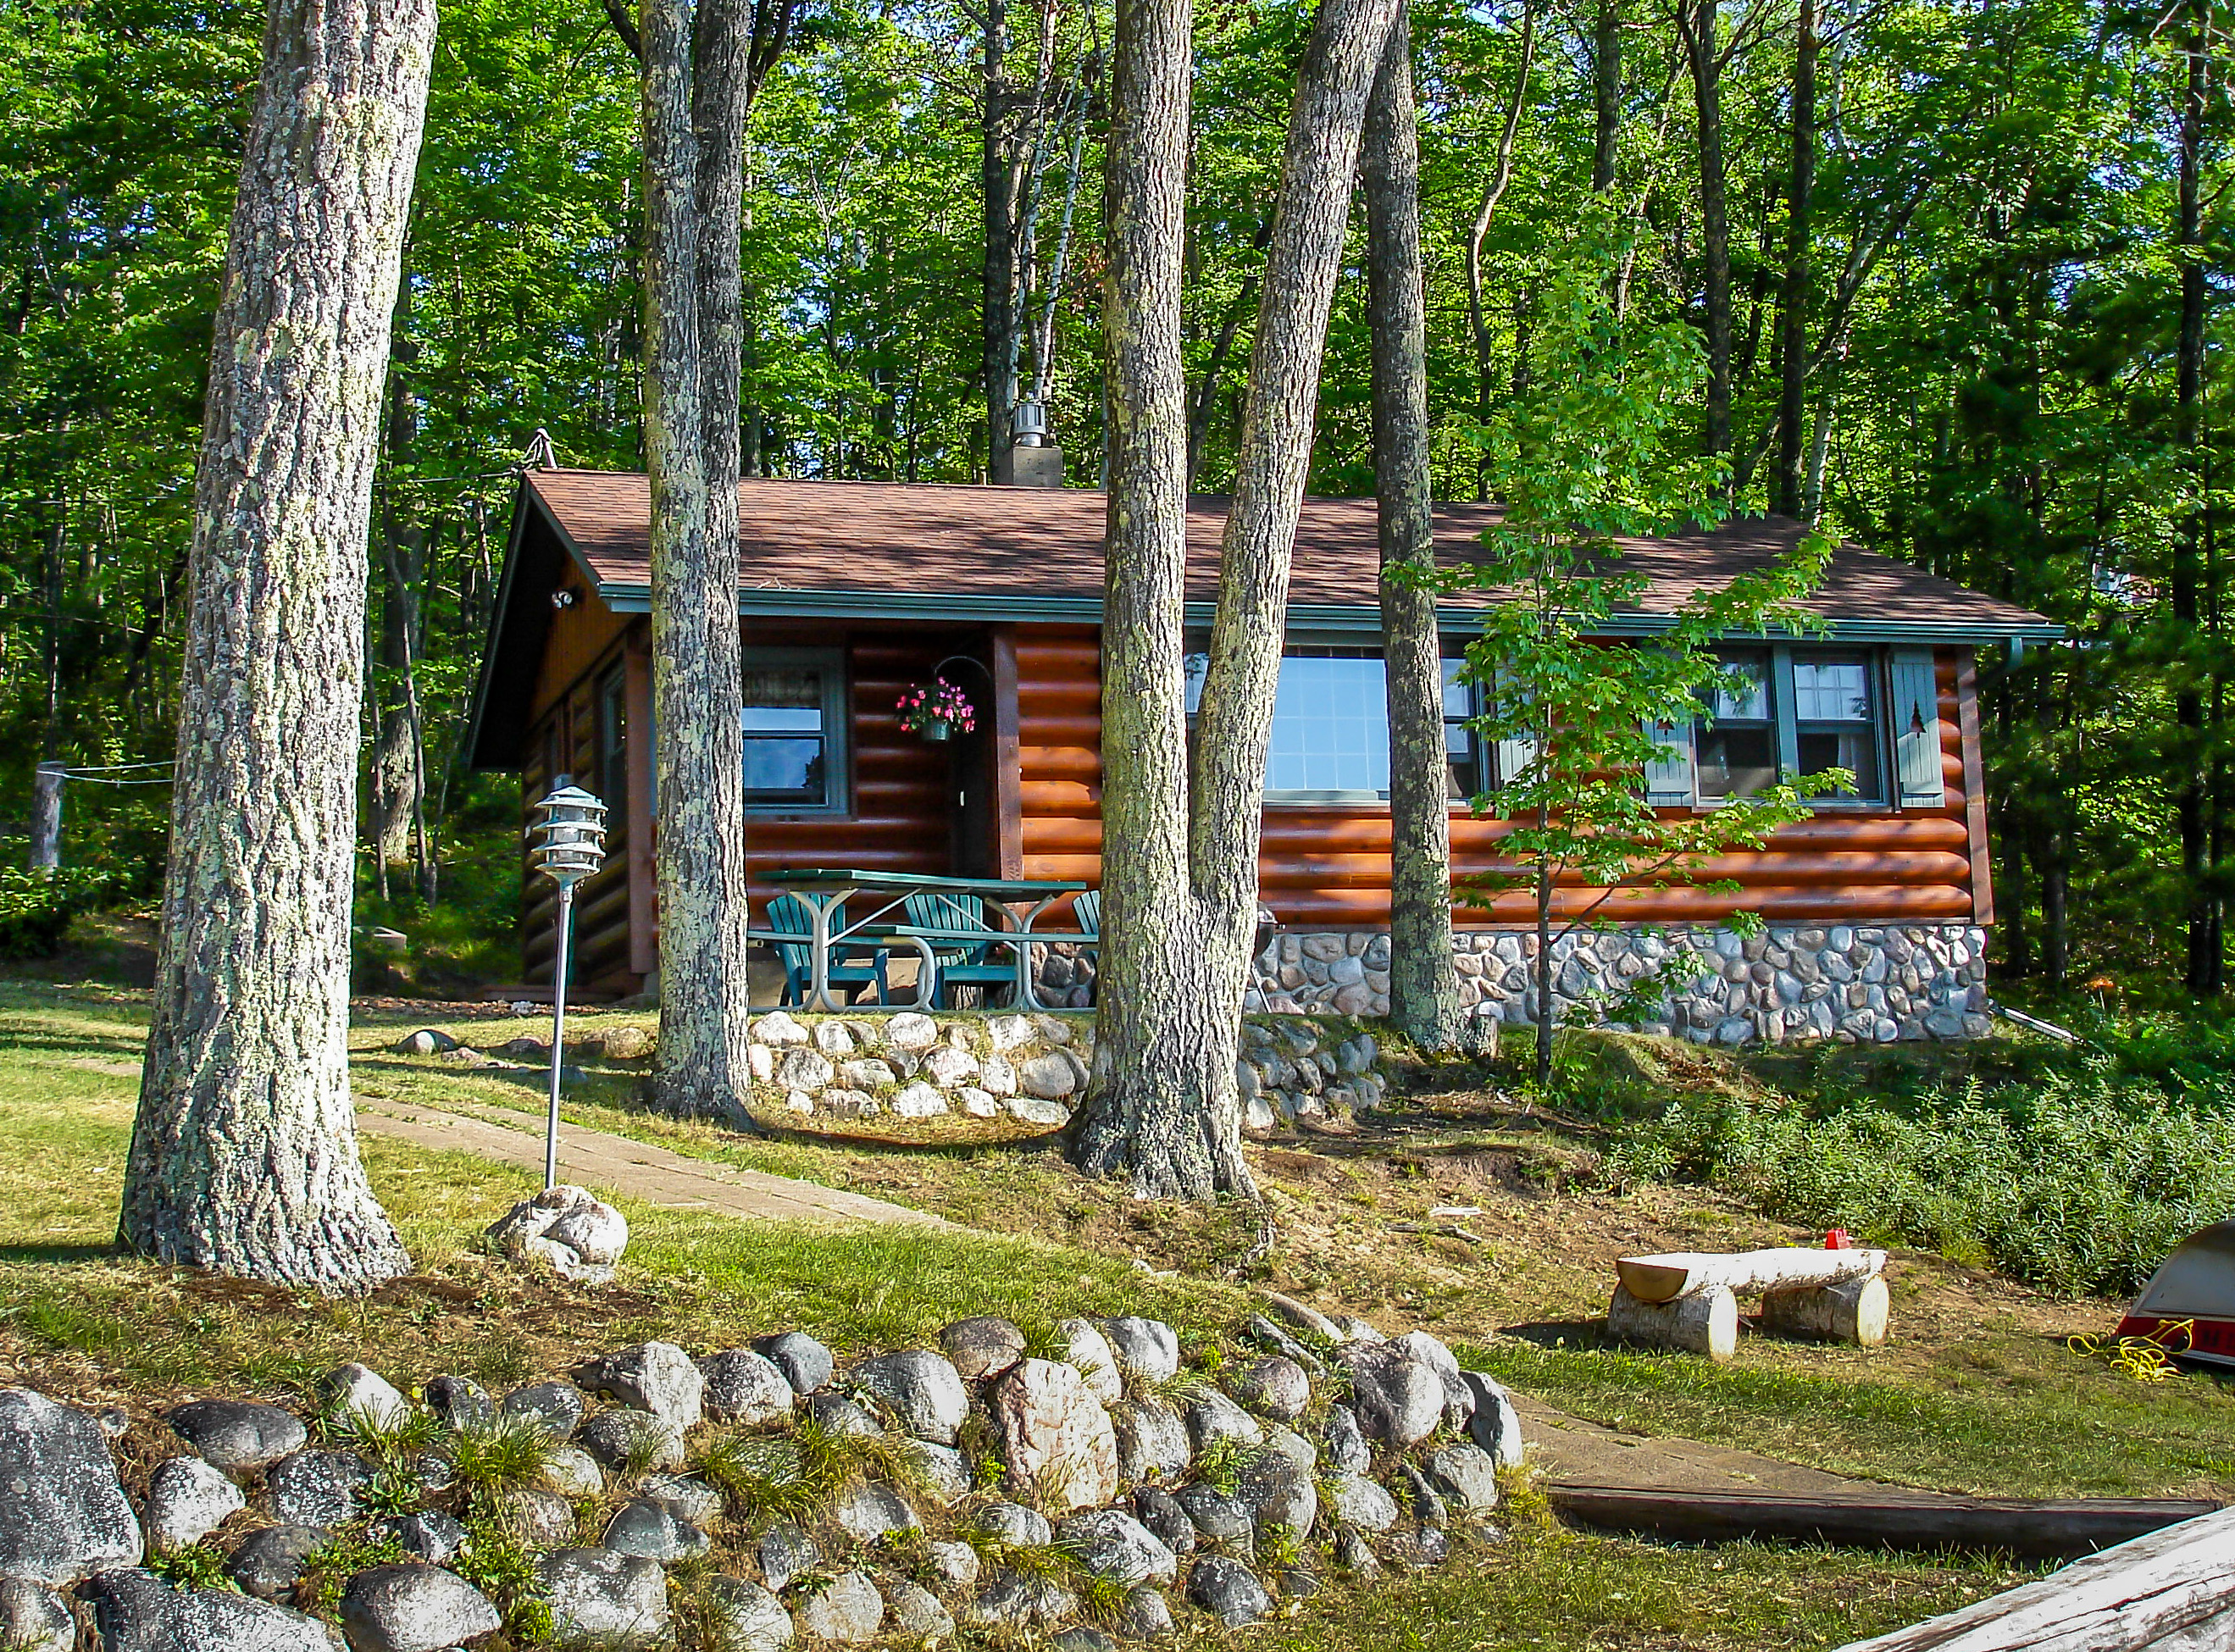 Welcome To A Wonderful Cabin Getaway In The North Woods Of Wisconsin Overlooking Beautiful Dam Lake Part Bear Paw Vacation Homes Trails End Cottage Is